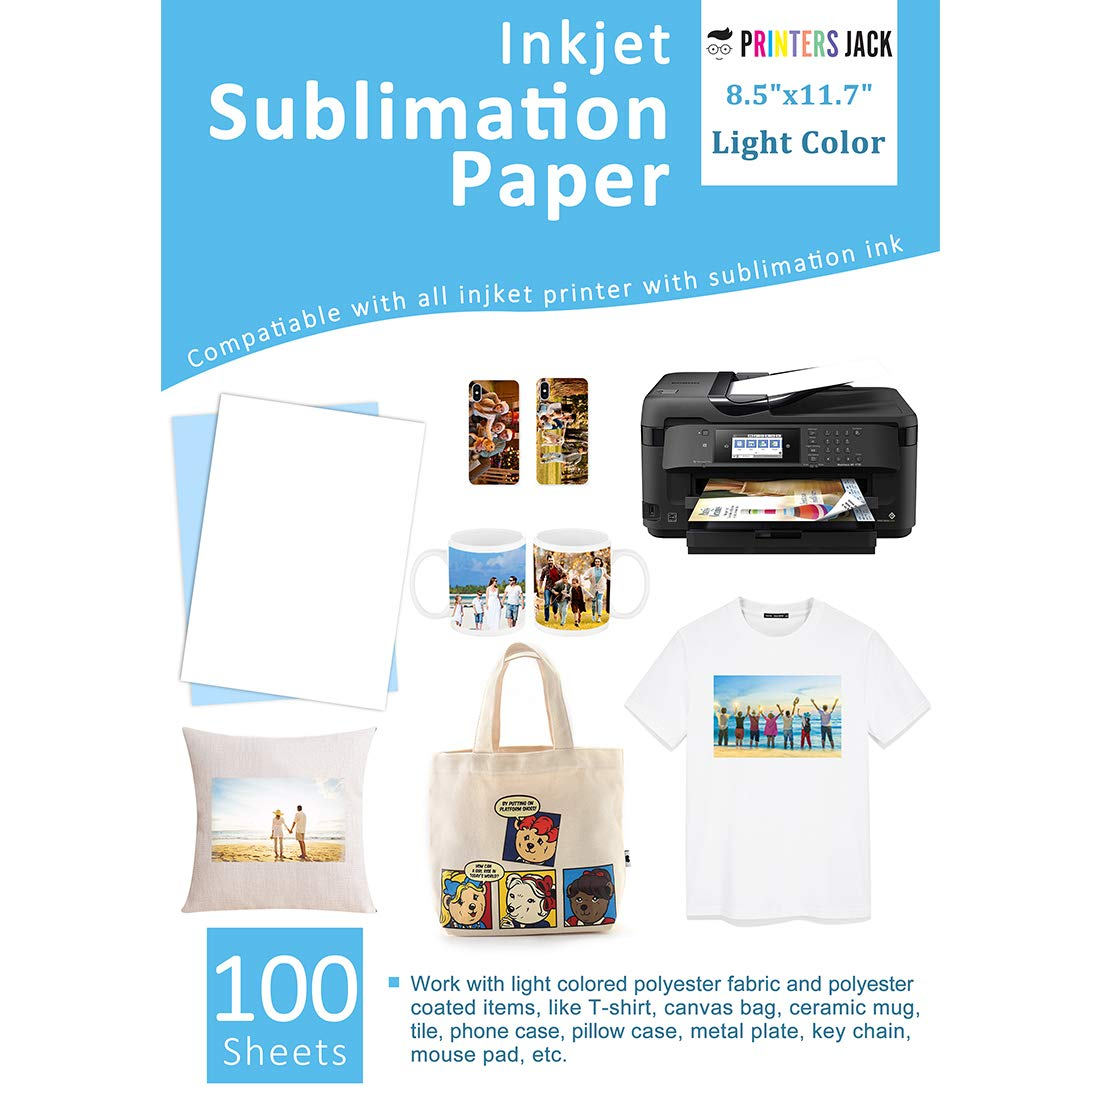 Sublimation Paper Heat Transer Paper 100 Sheets 8.3'' x 11.7'' for Any Epson HP Canon Sawgrass Inkjet Printer with Sublimation Ink by Printers Jack